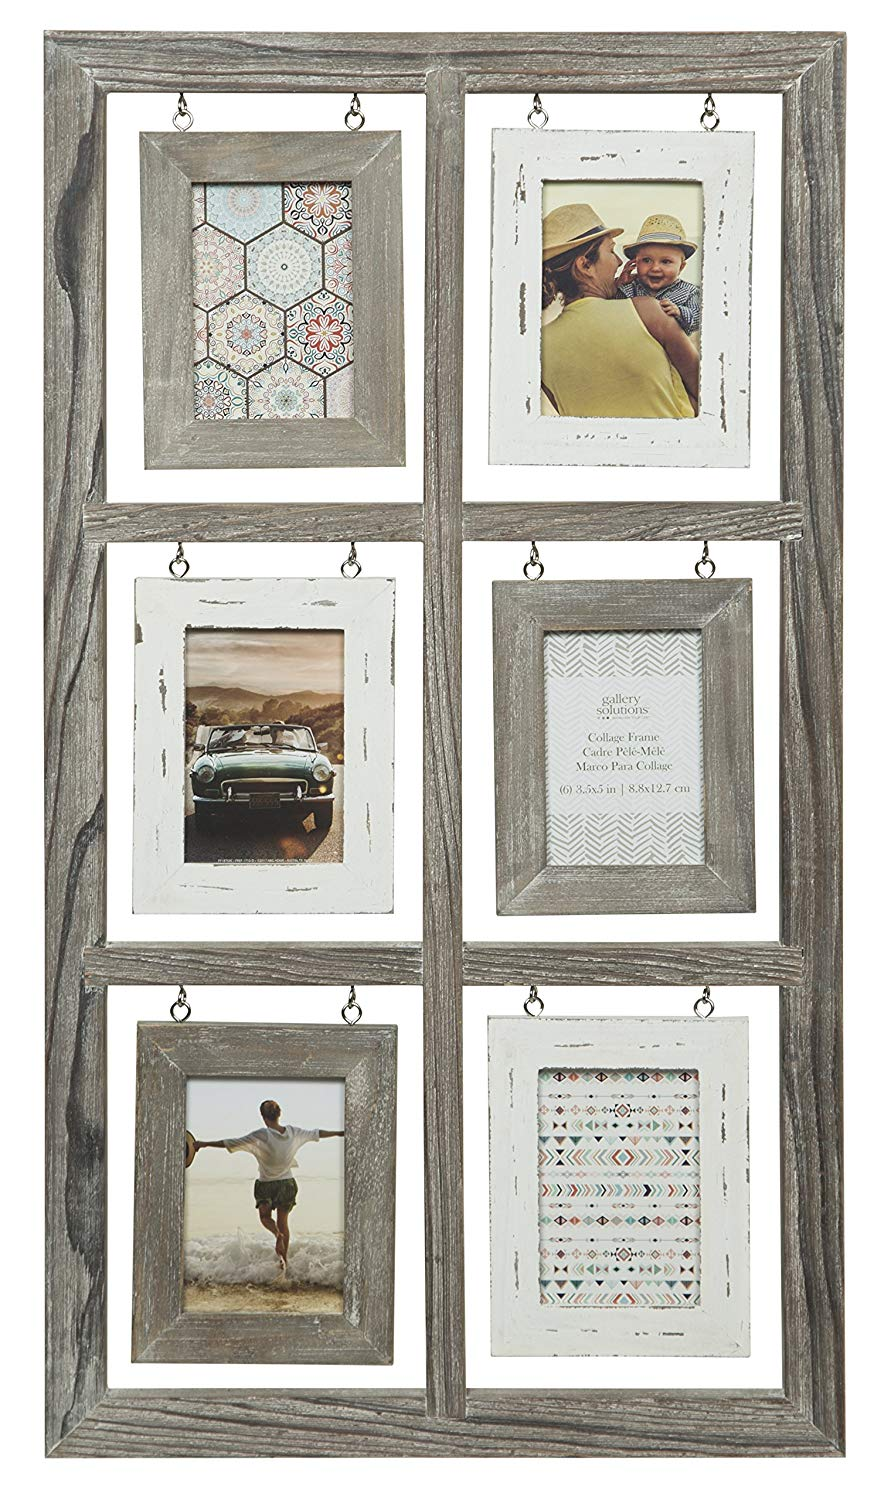 Cheap 15 X 28 Frame, find 15 X 28 Frame deals on line at Alibaba.com